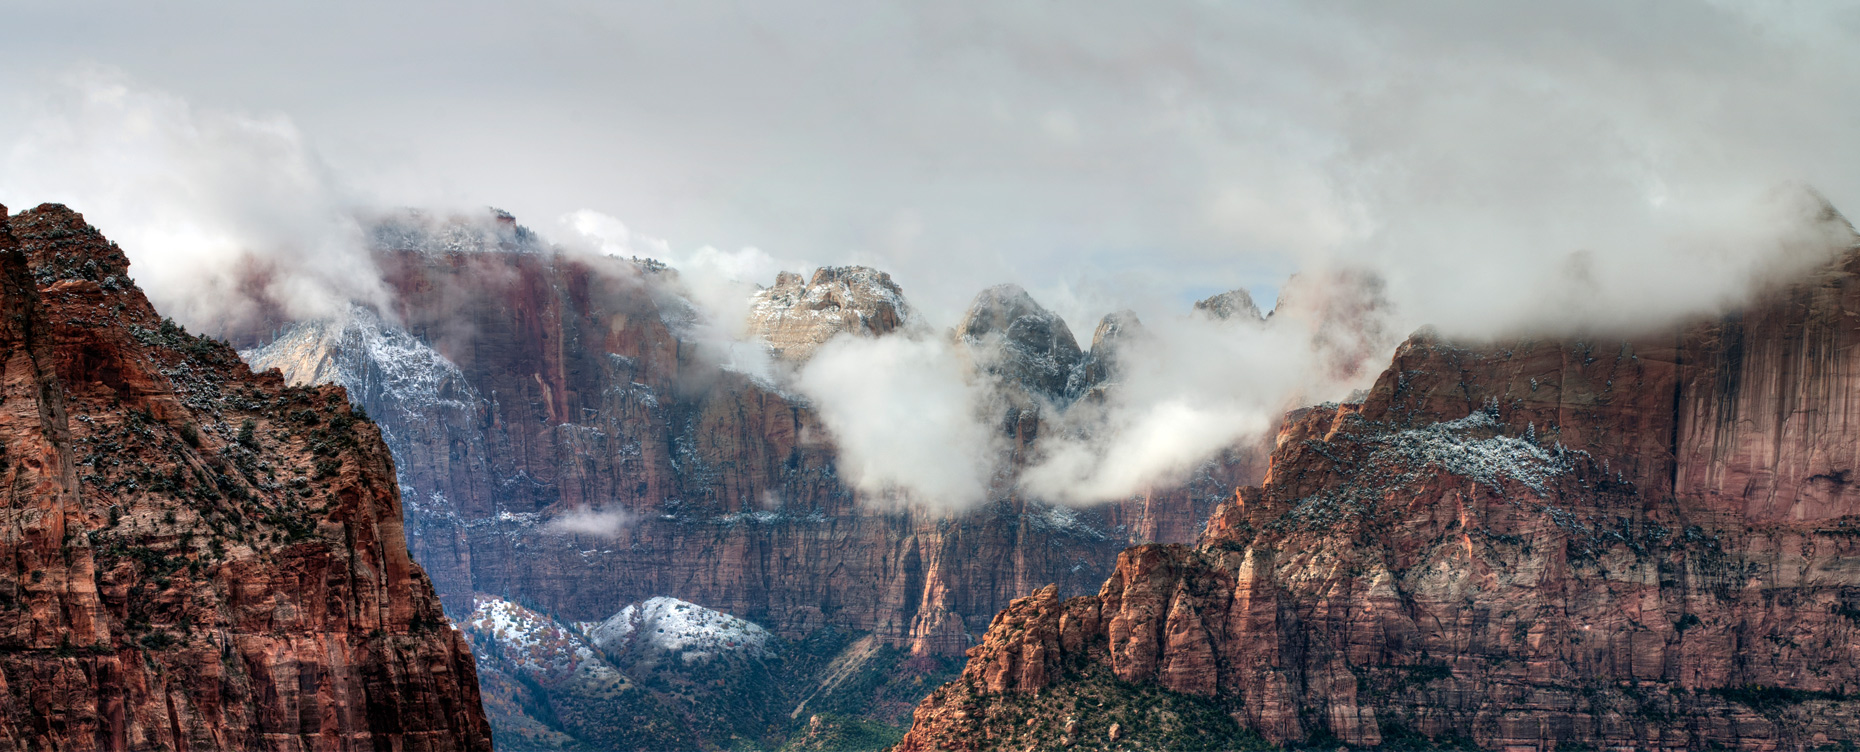 Clearing storm over the West Temple, Zion National Park, Utah